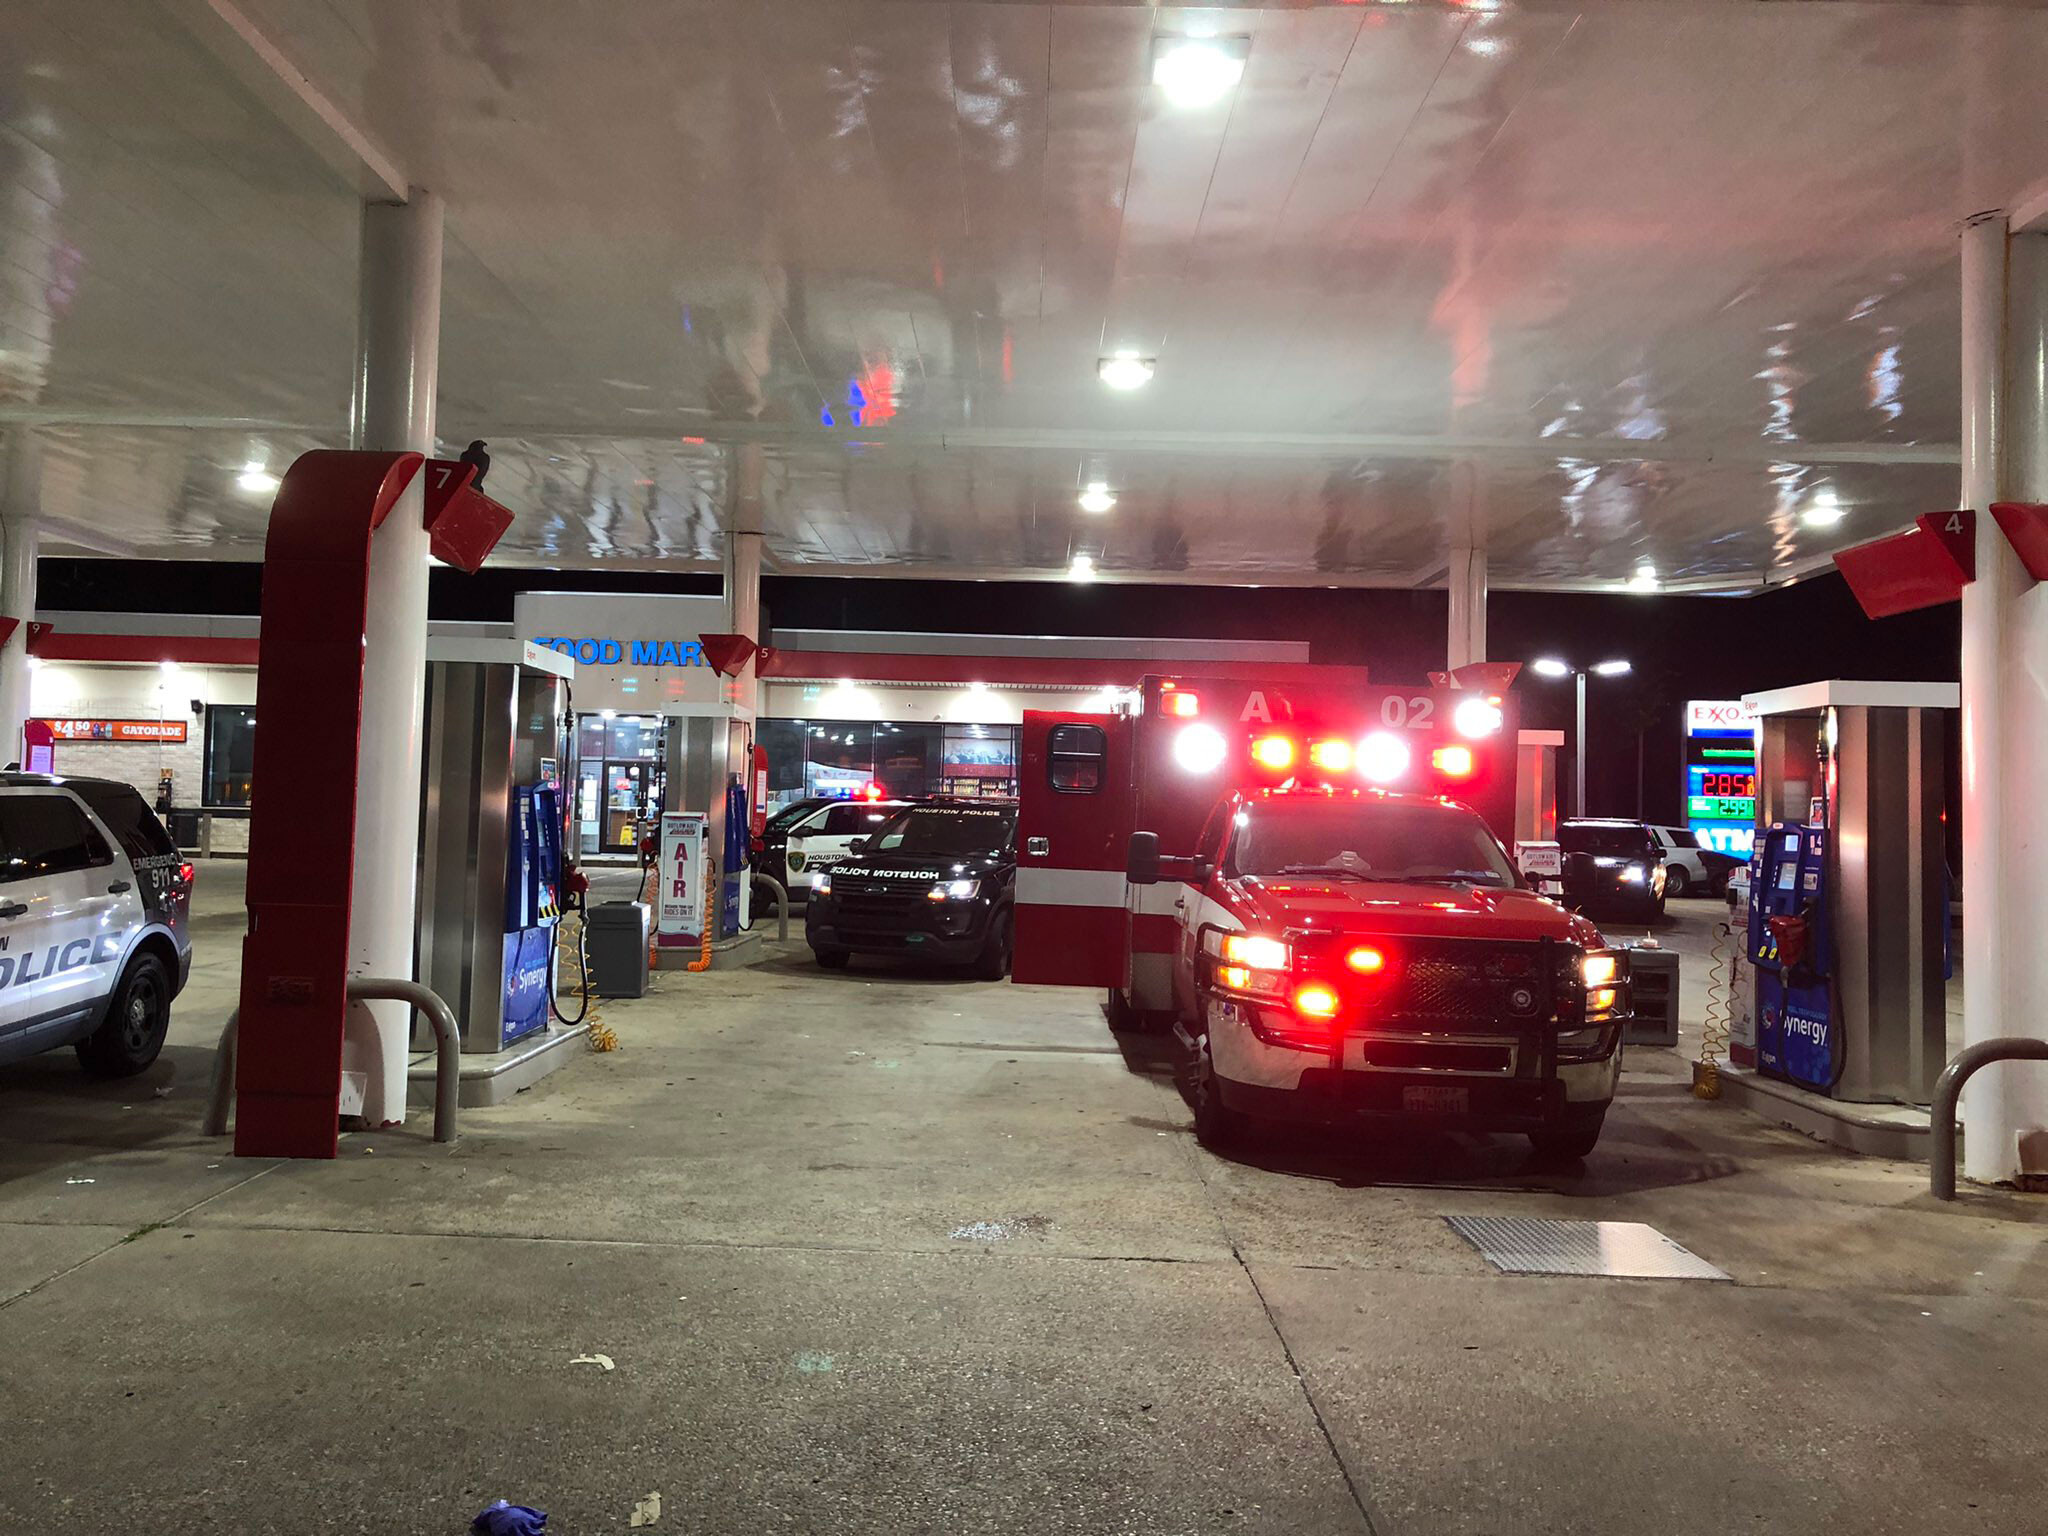 Man arrested after taking Houston ambulance at gunpoint with paramedic and patient inside, police say